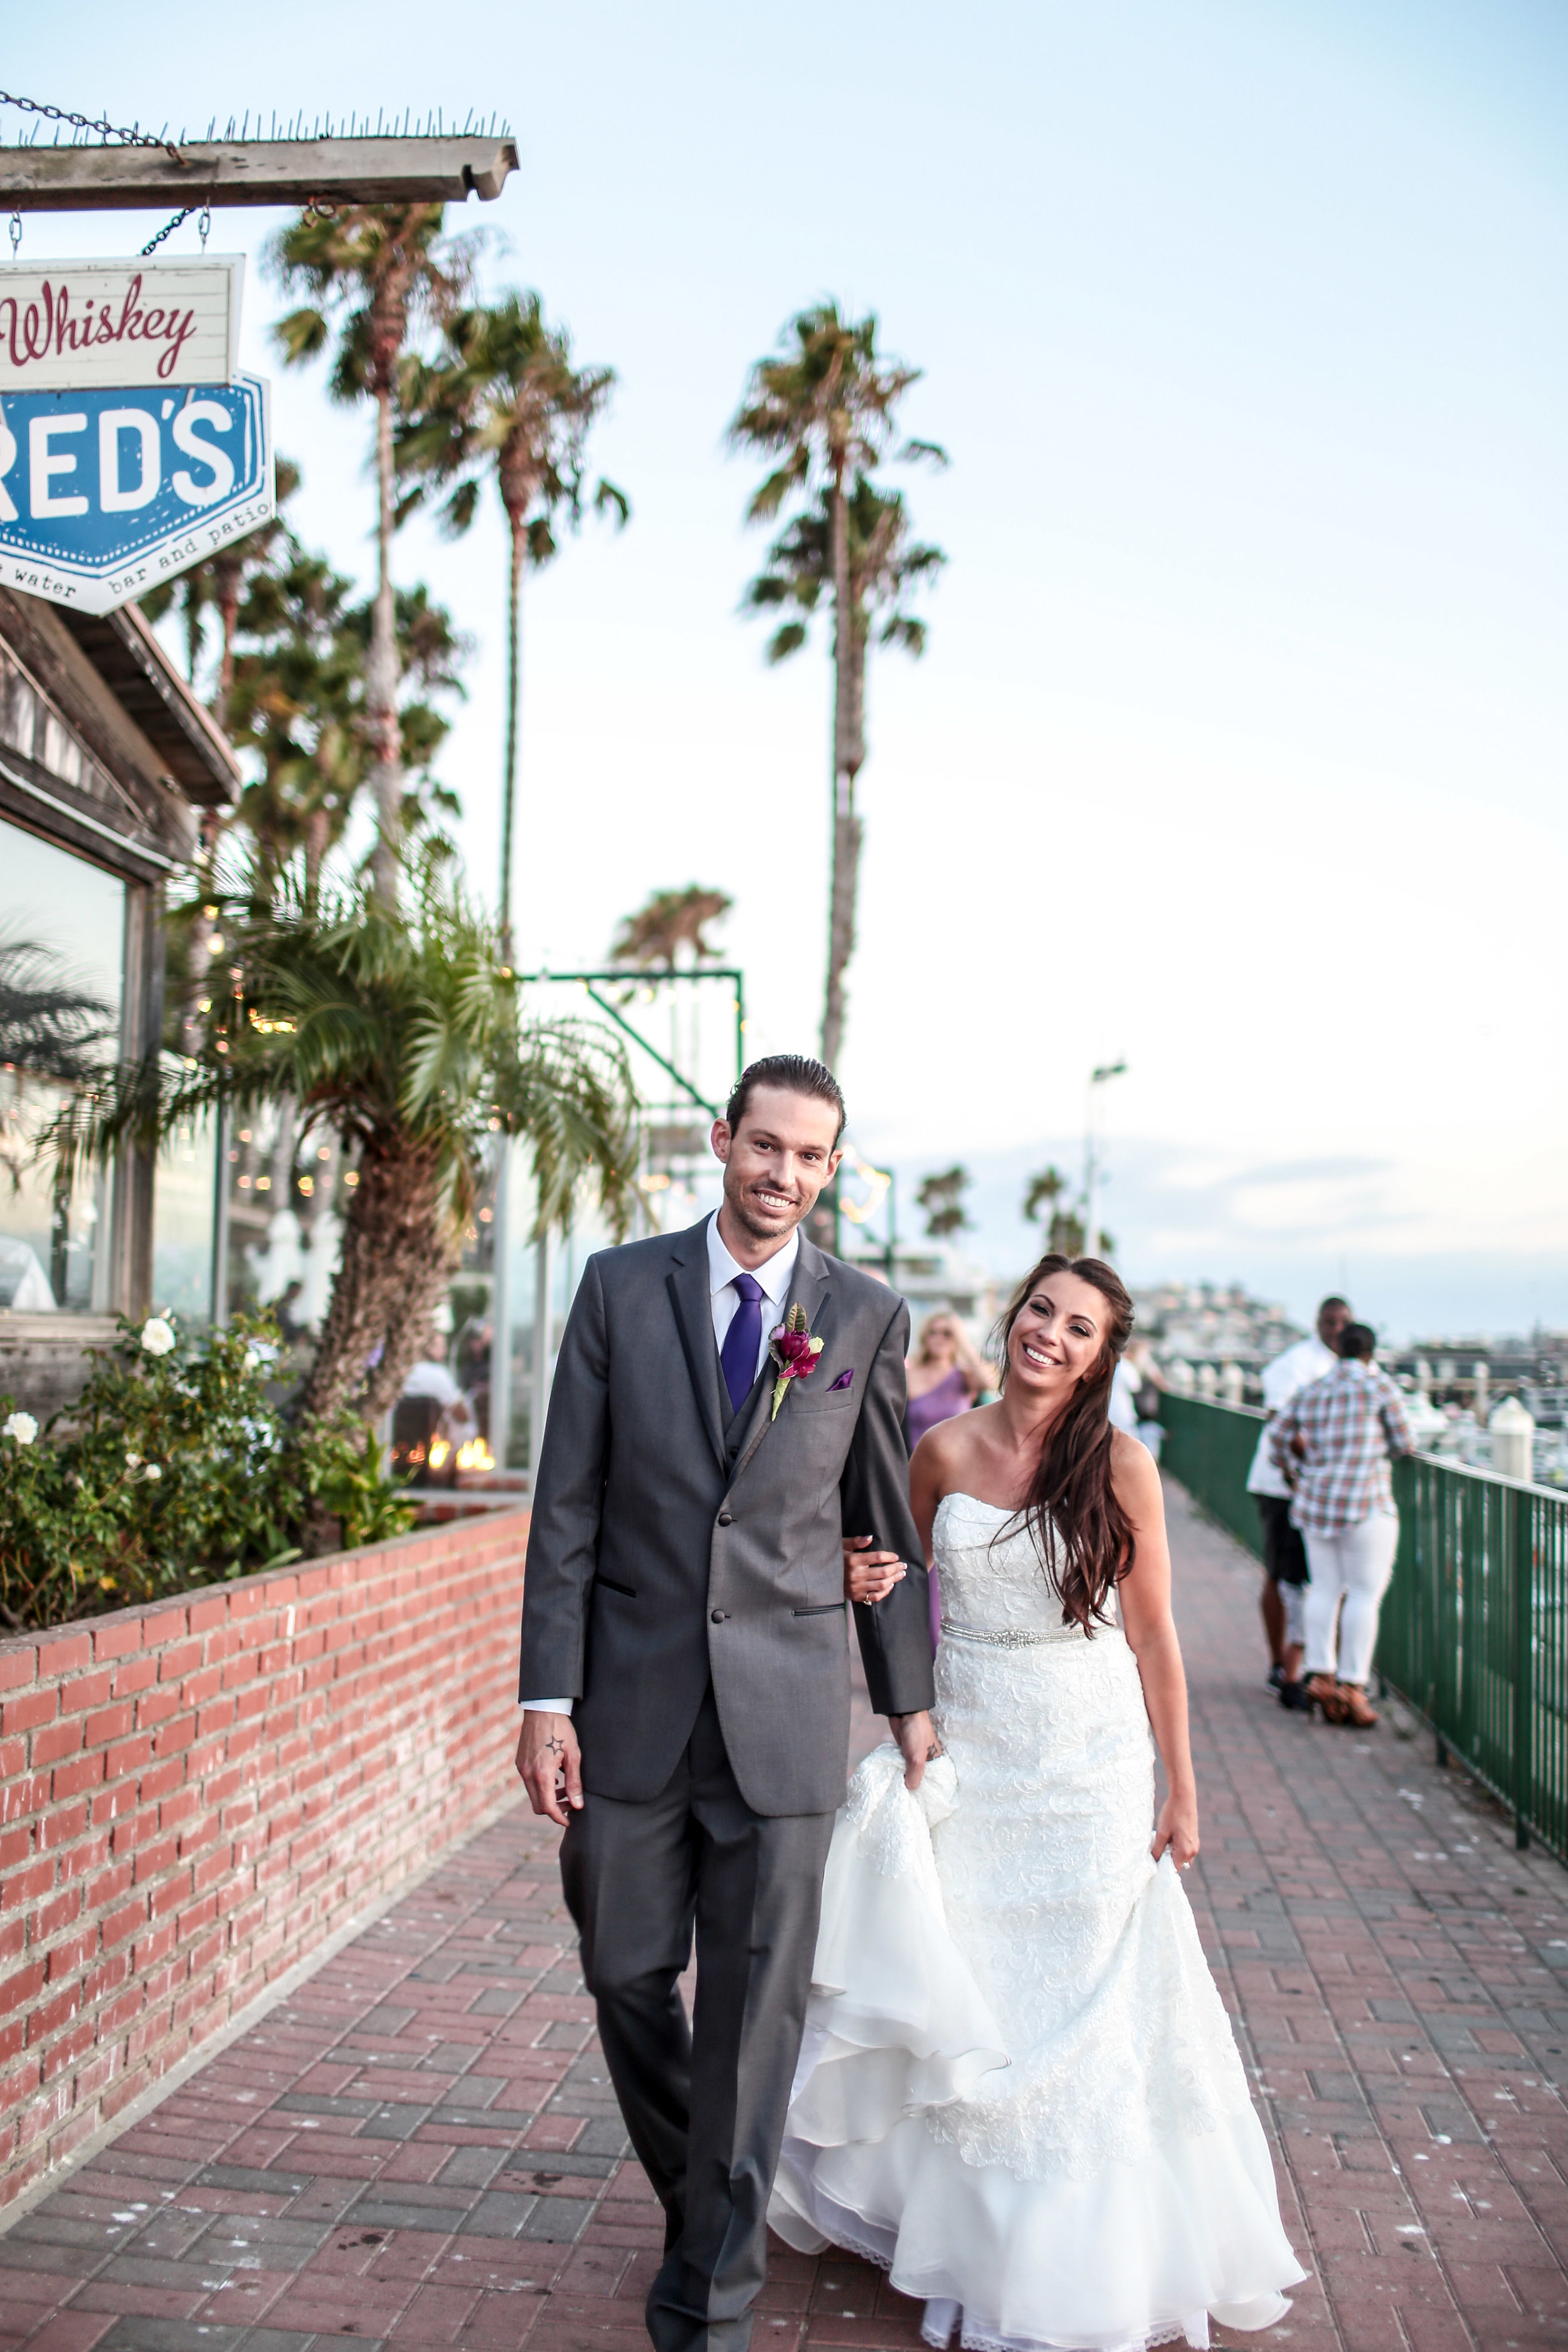 Amanda and Eric smile for the camera by the beach at their Marina del Rey wedding.